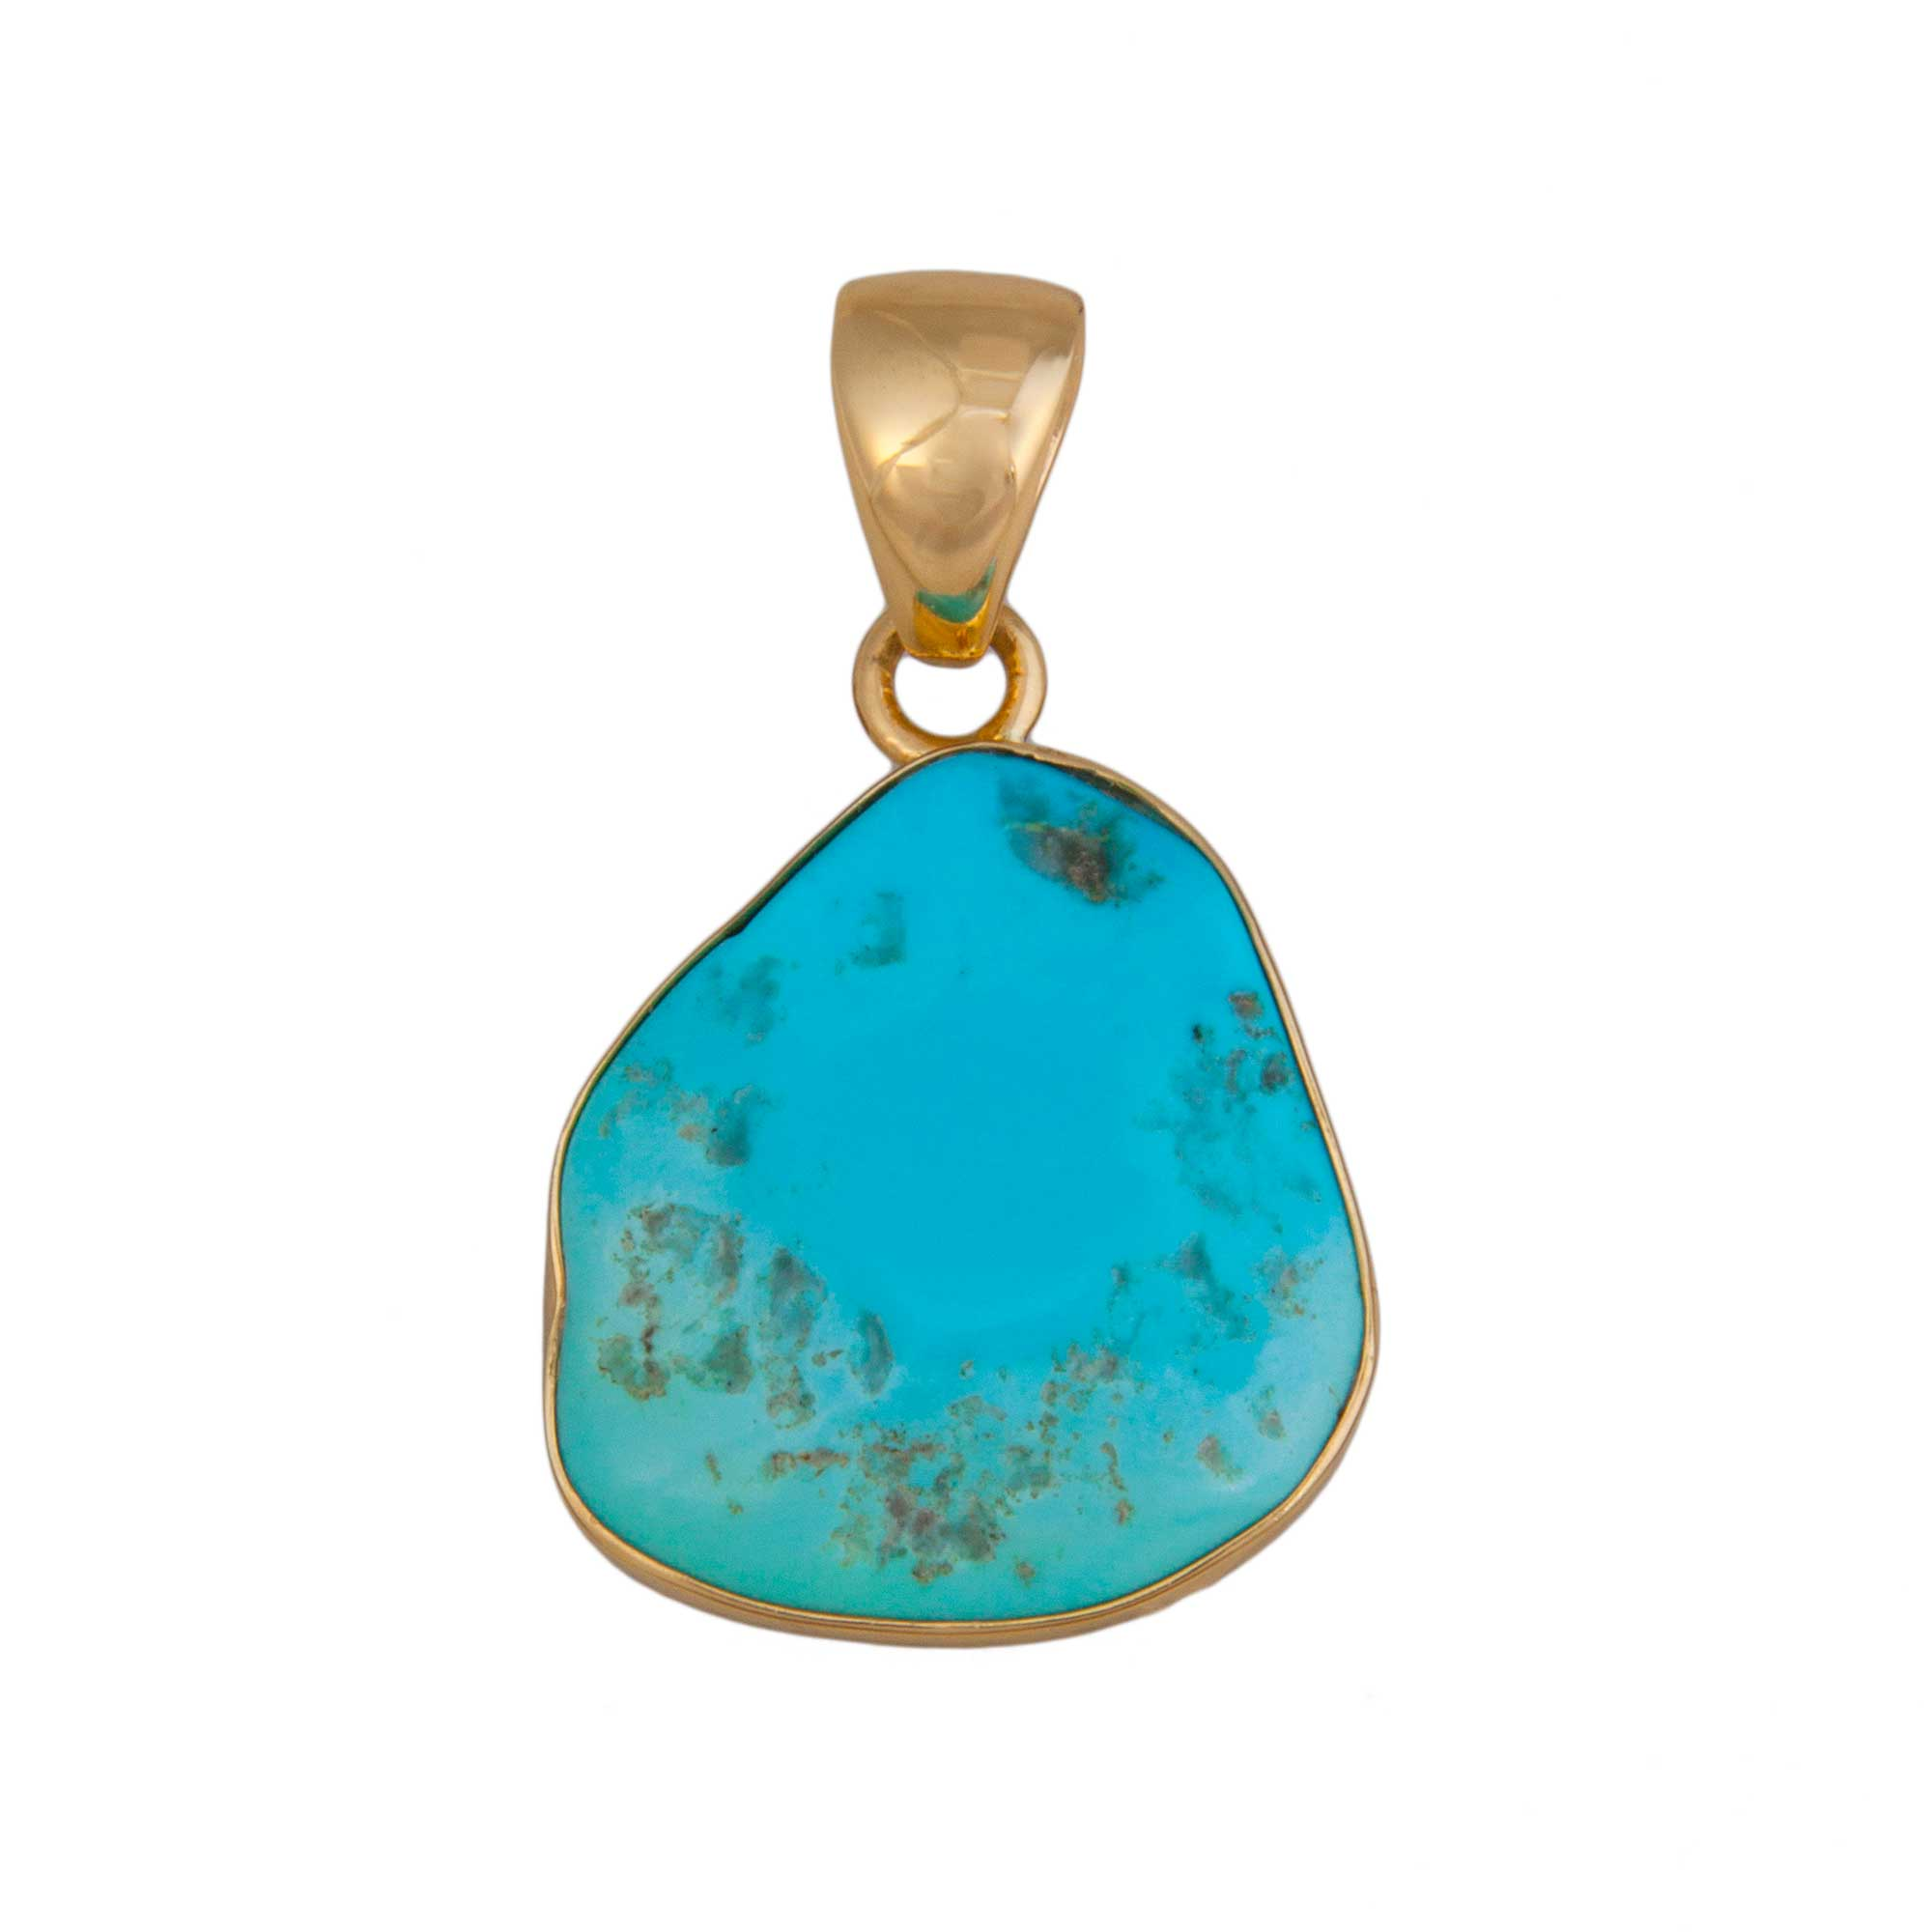 Alchemia Sleeping Beauty Turquoise Pendant | Charles Albert Jewelry